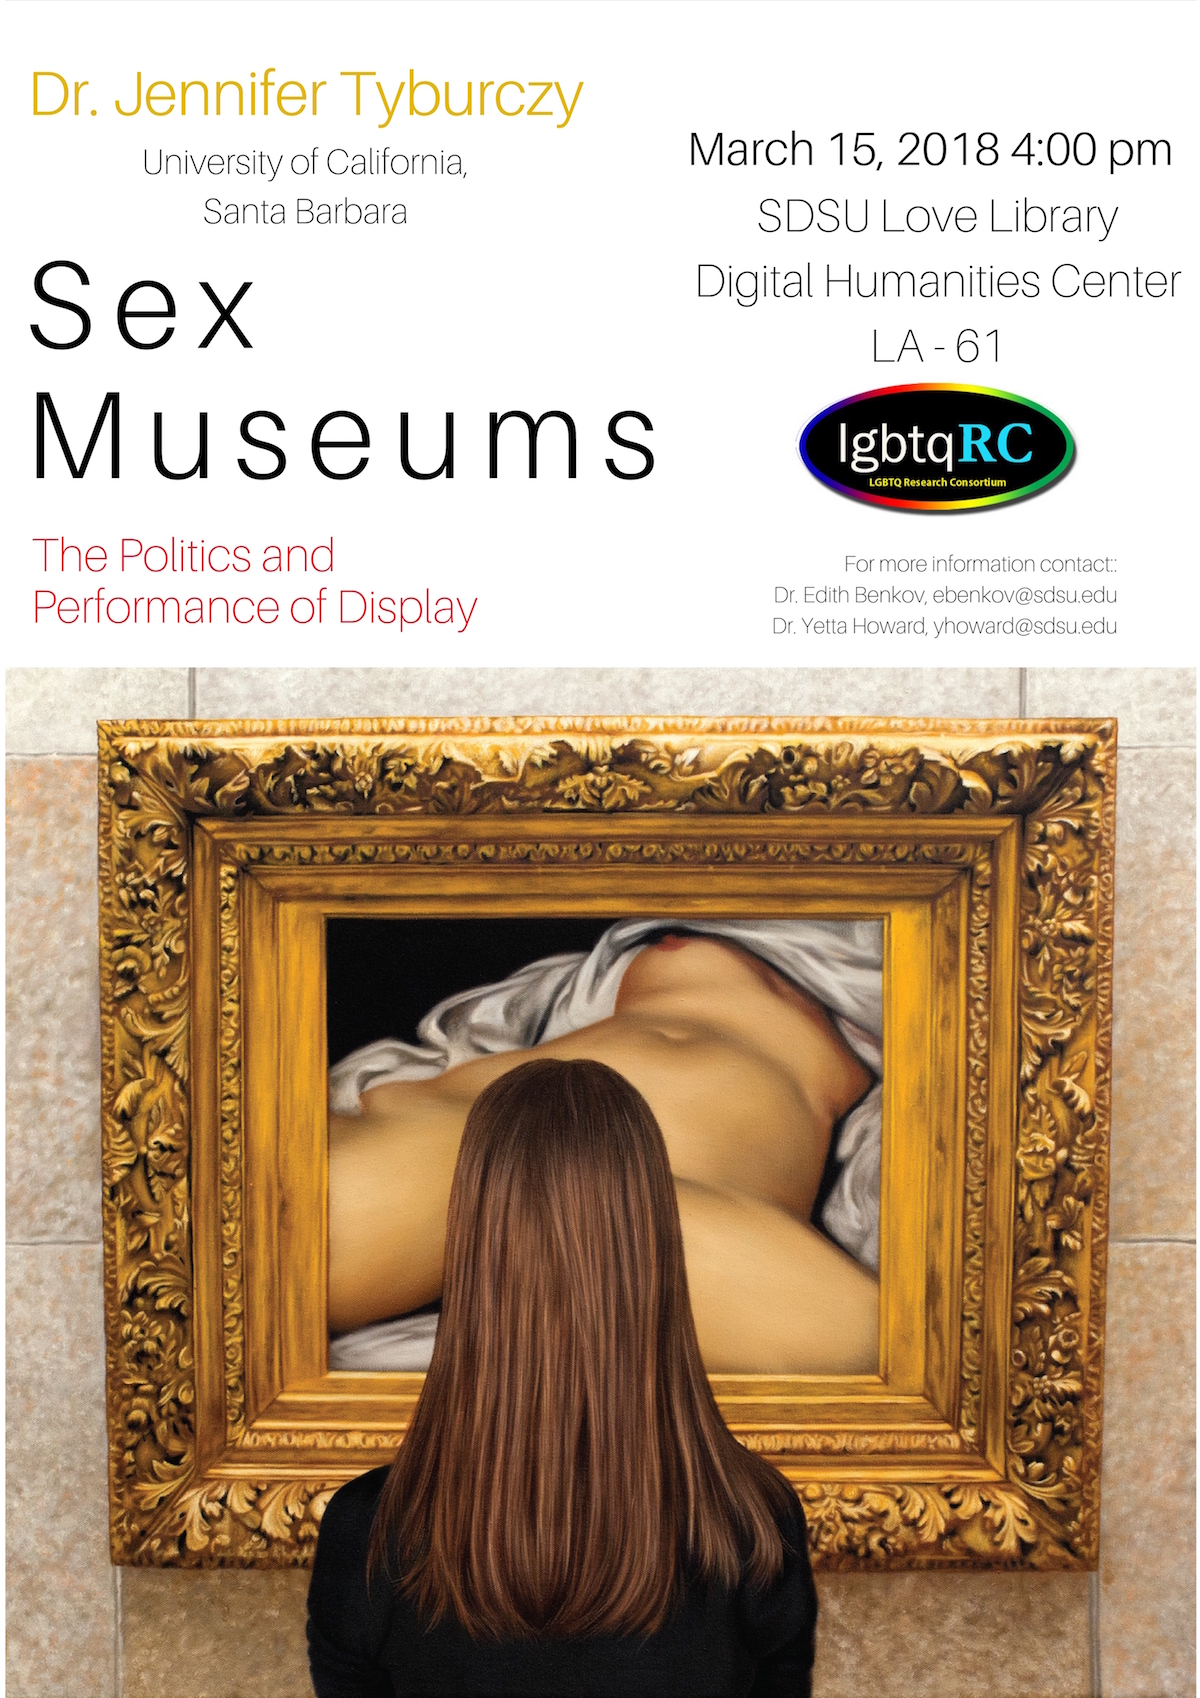 Sexual art museums in california